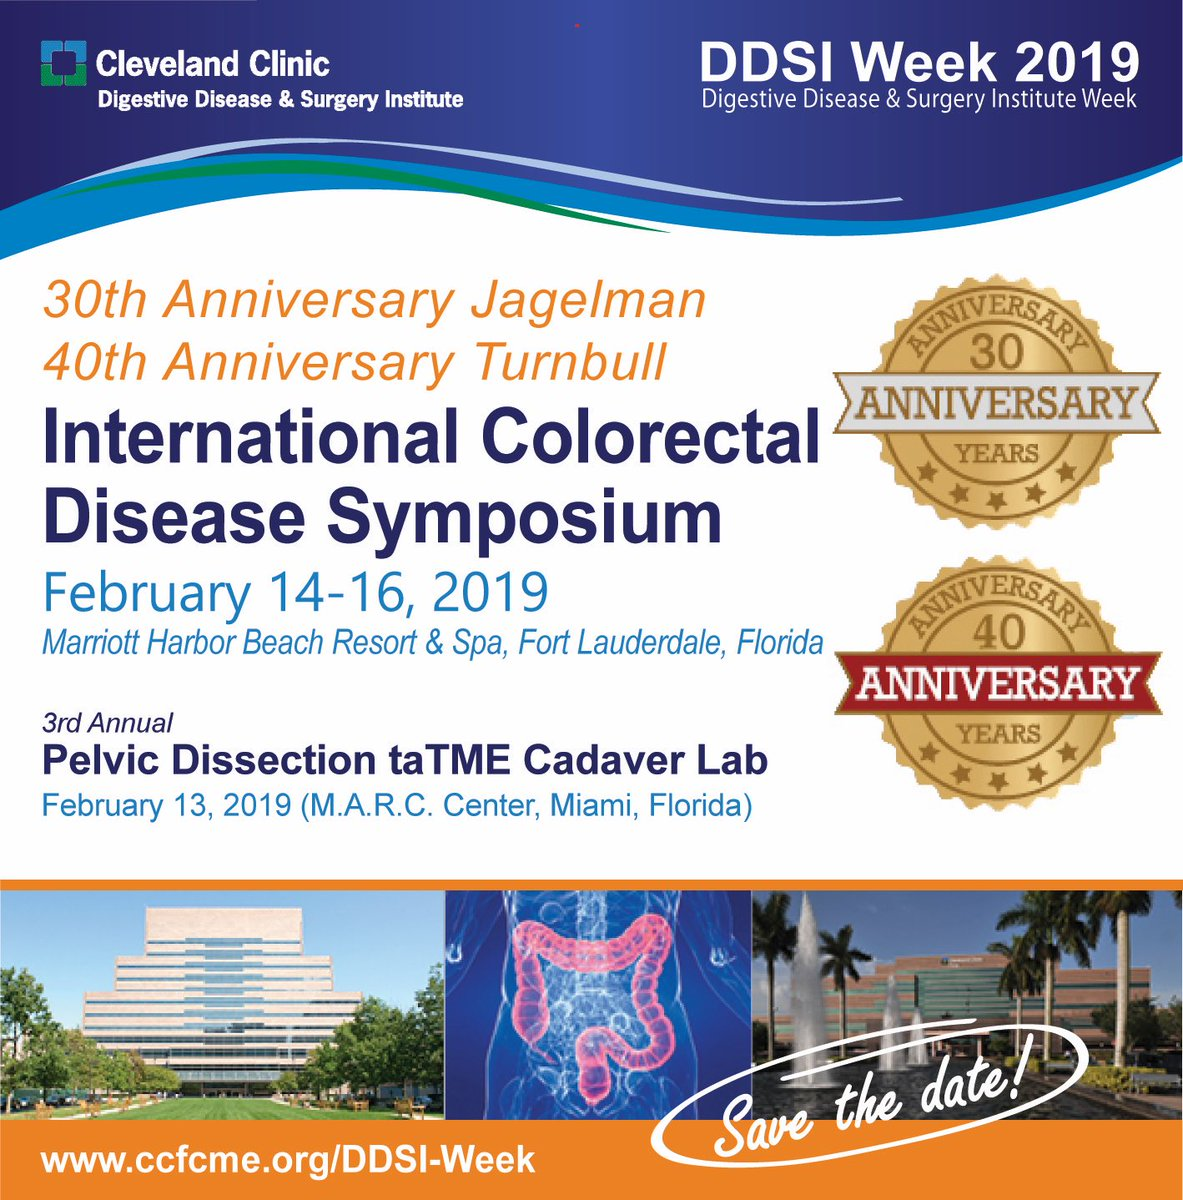 Great to have everyone in Fl @ClevelandClinic #DDSIWEEK19 🌎